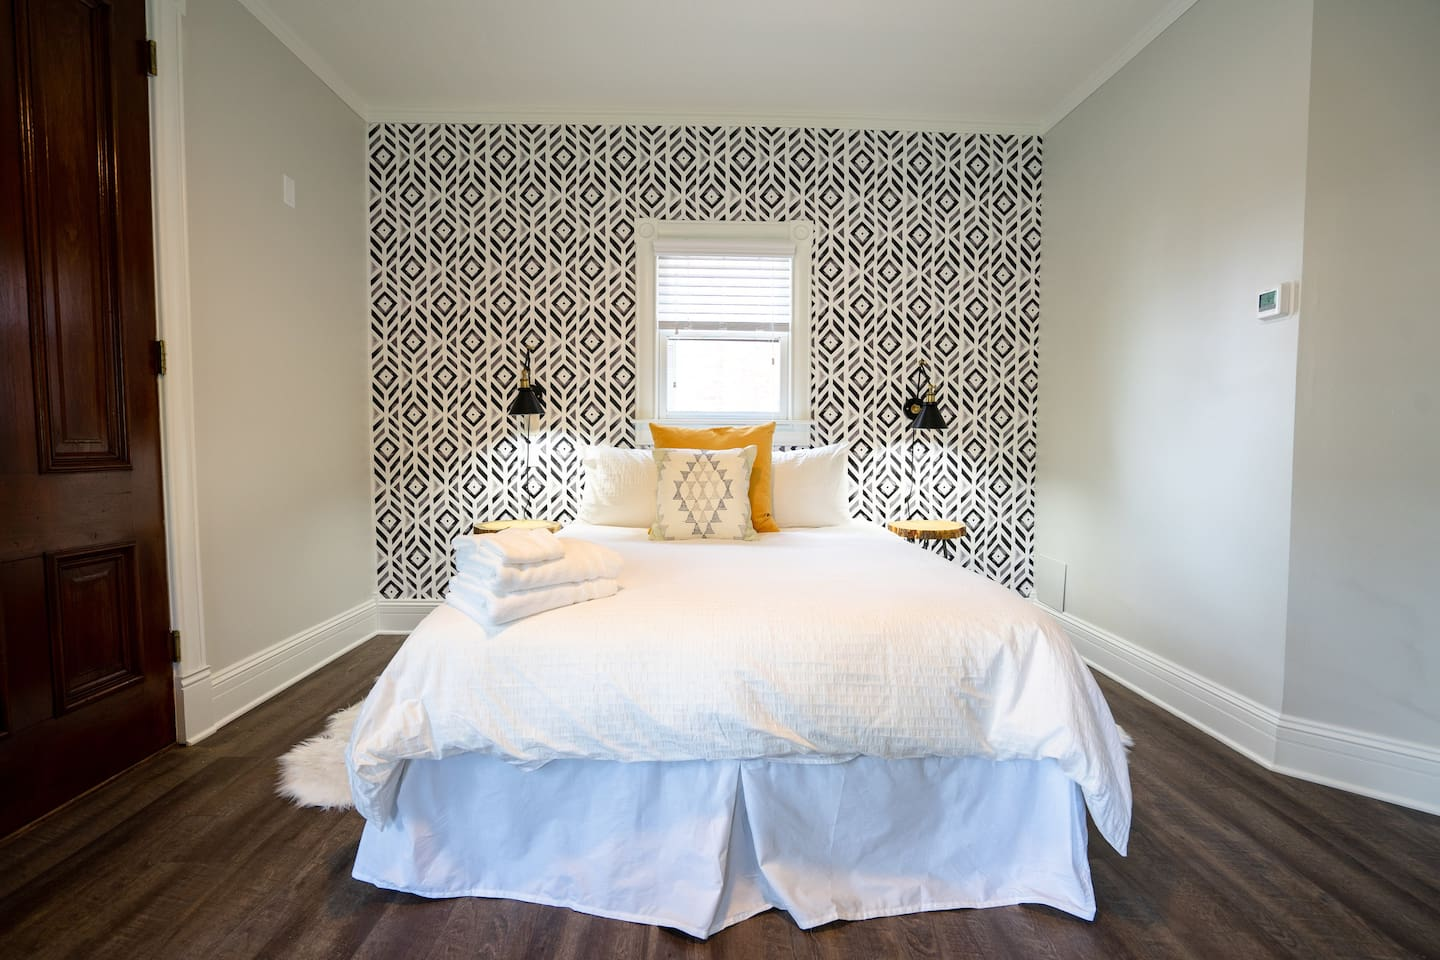 The room features a plush queen bed.